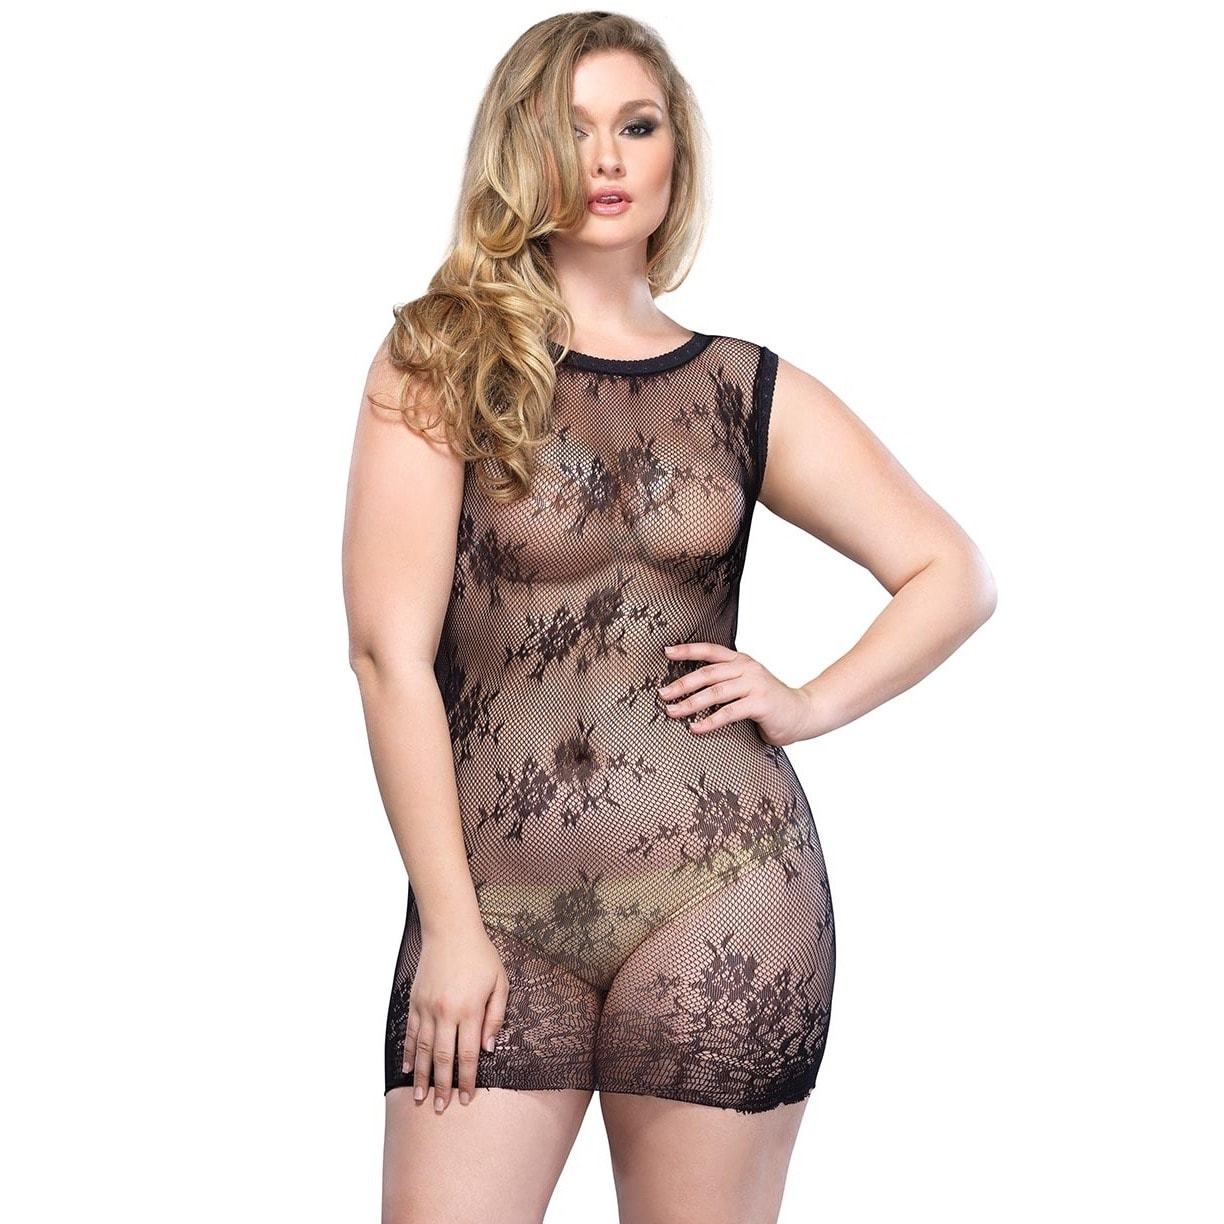 Leg Avenue Black Nylon/Spandex Lace Foral Plus-size Mini ...